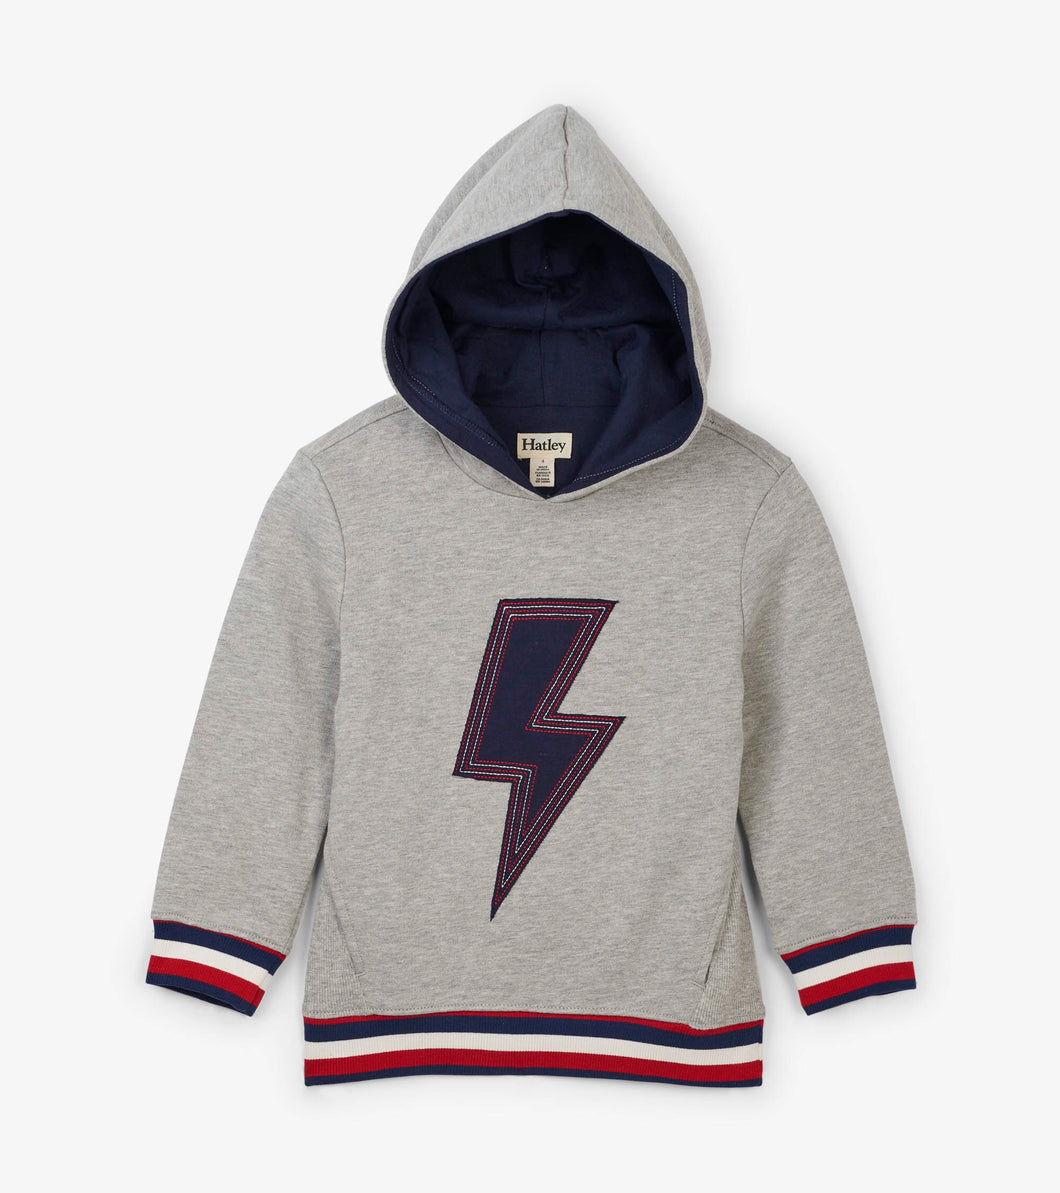 Hatley lightning flash hooded pullover hoodie jumper